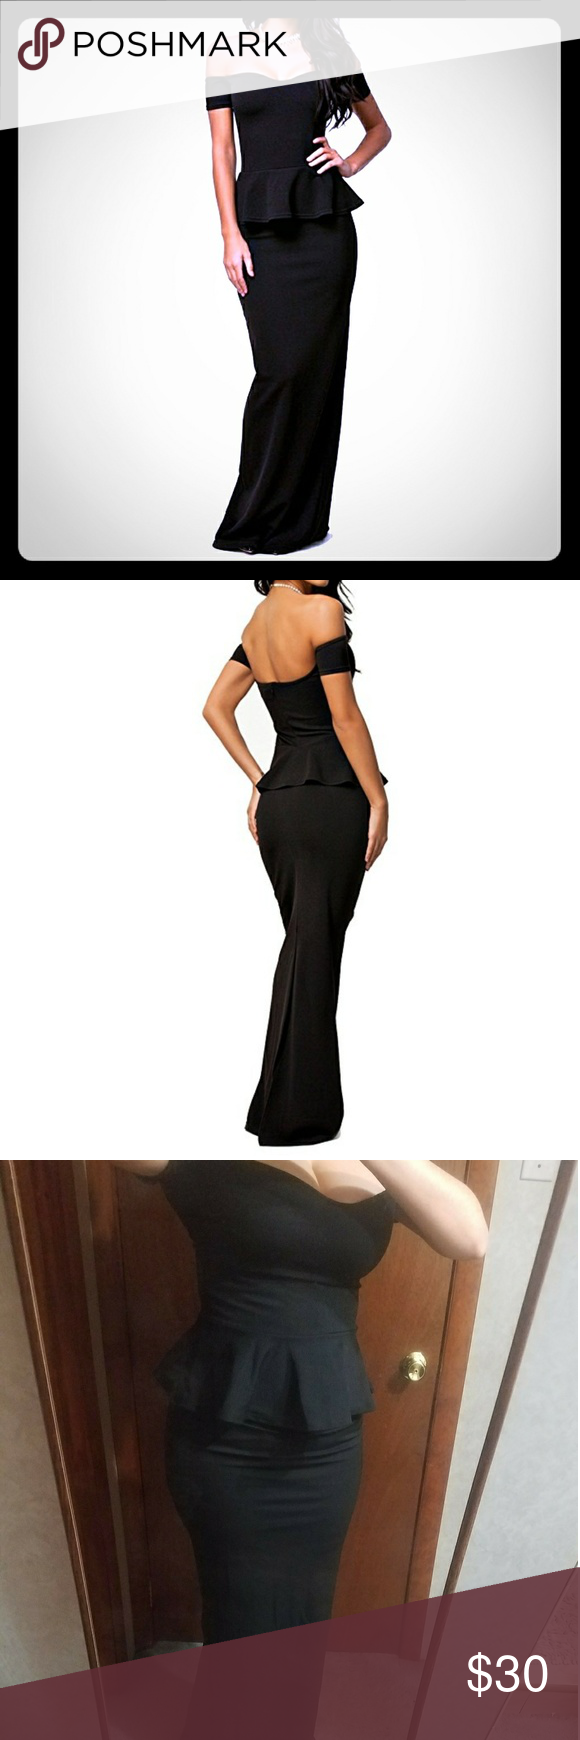 Formal long black dress long black maxi gowns and slim waist